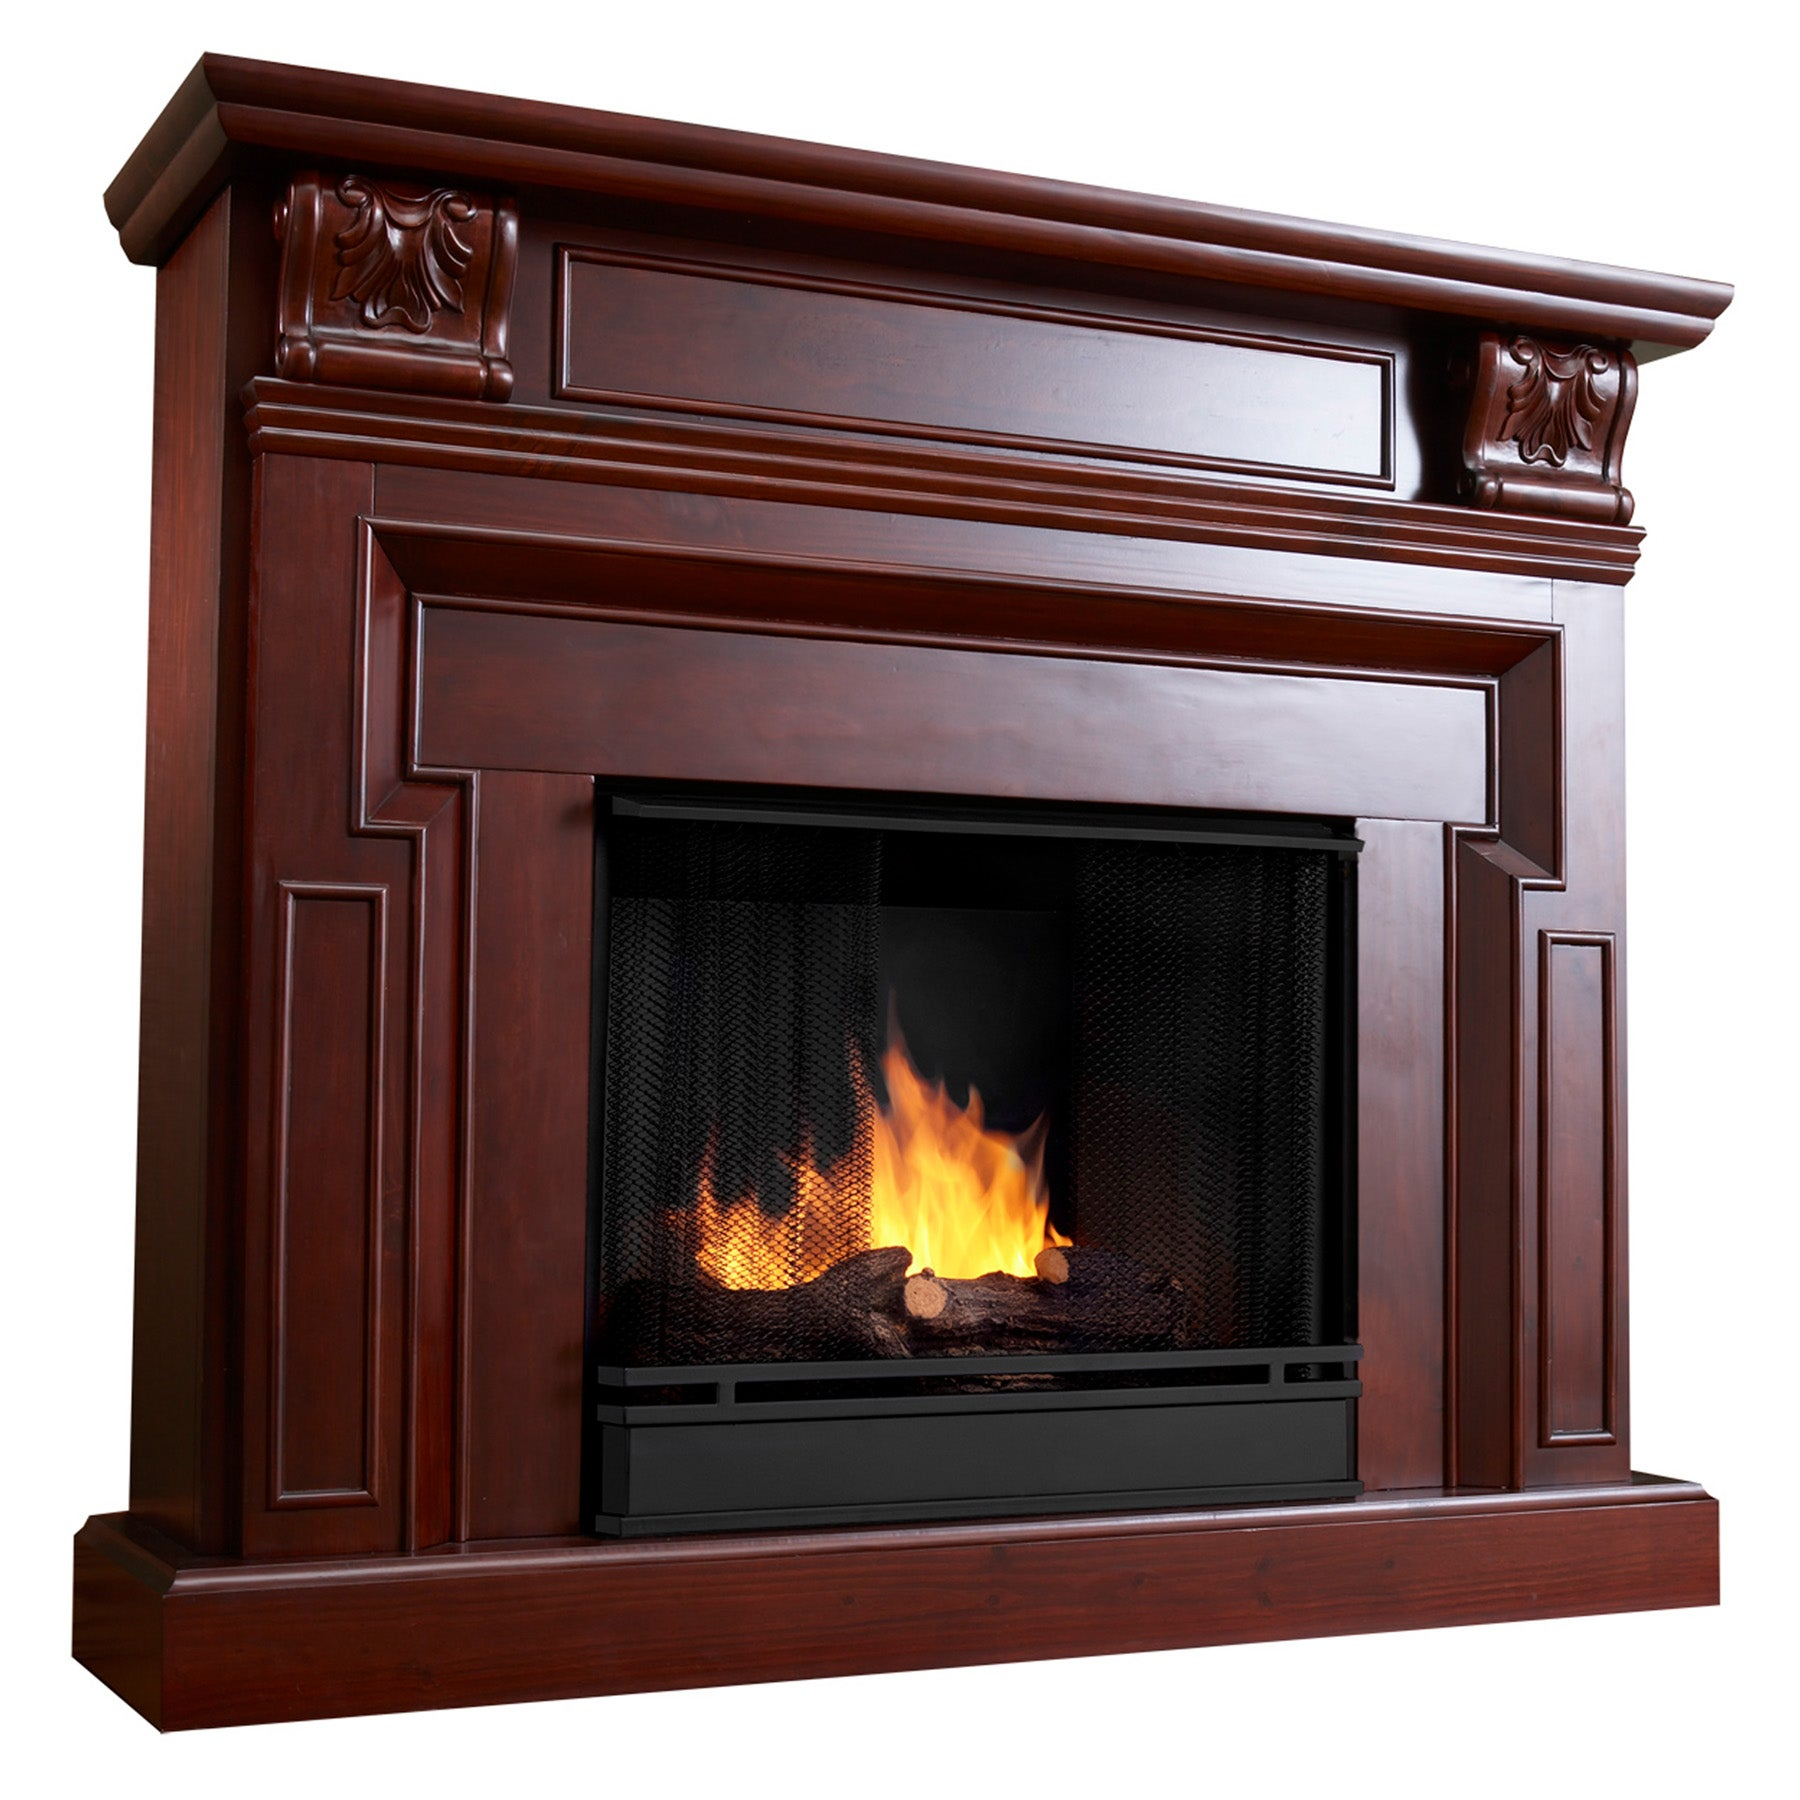 'Real Flame' Kristine Ventless Fireplace